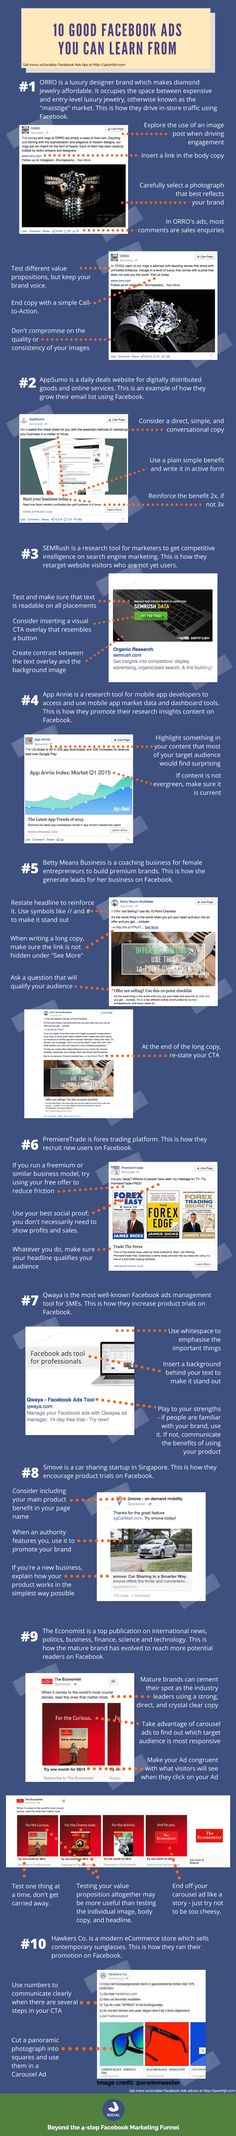 10 Good Facebook Ads You Can Learn From - infographic  #RePin by AT Social Media Marketing - Pinterest Marketing Specialists ATSocialMedia.co.uk